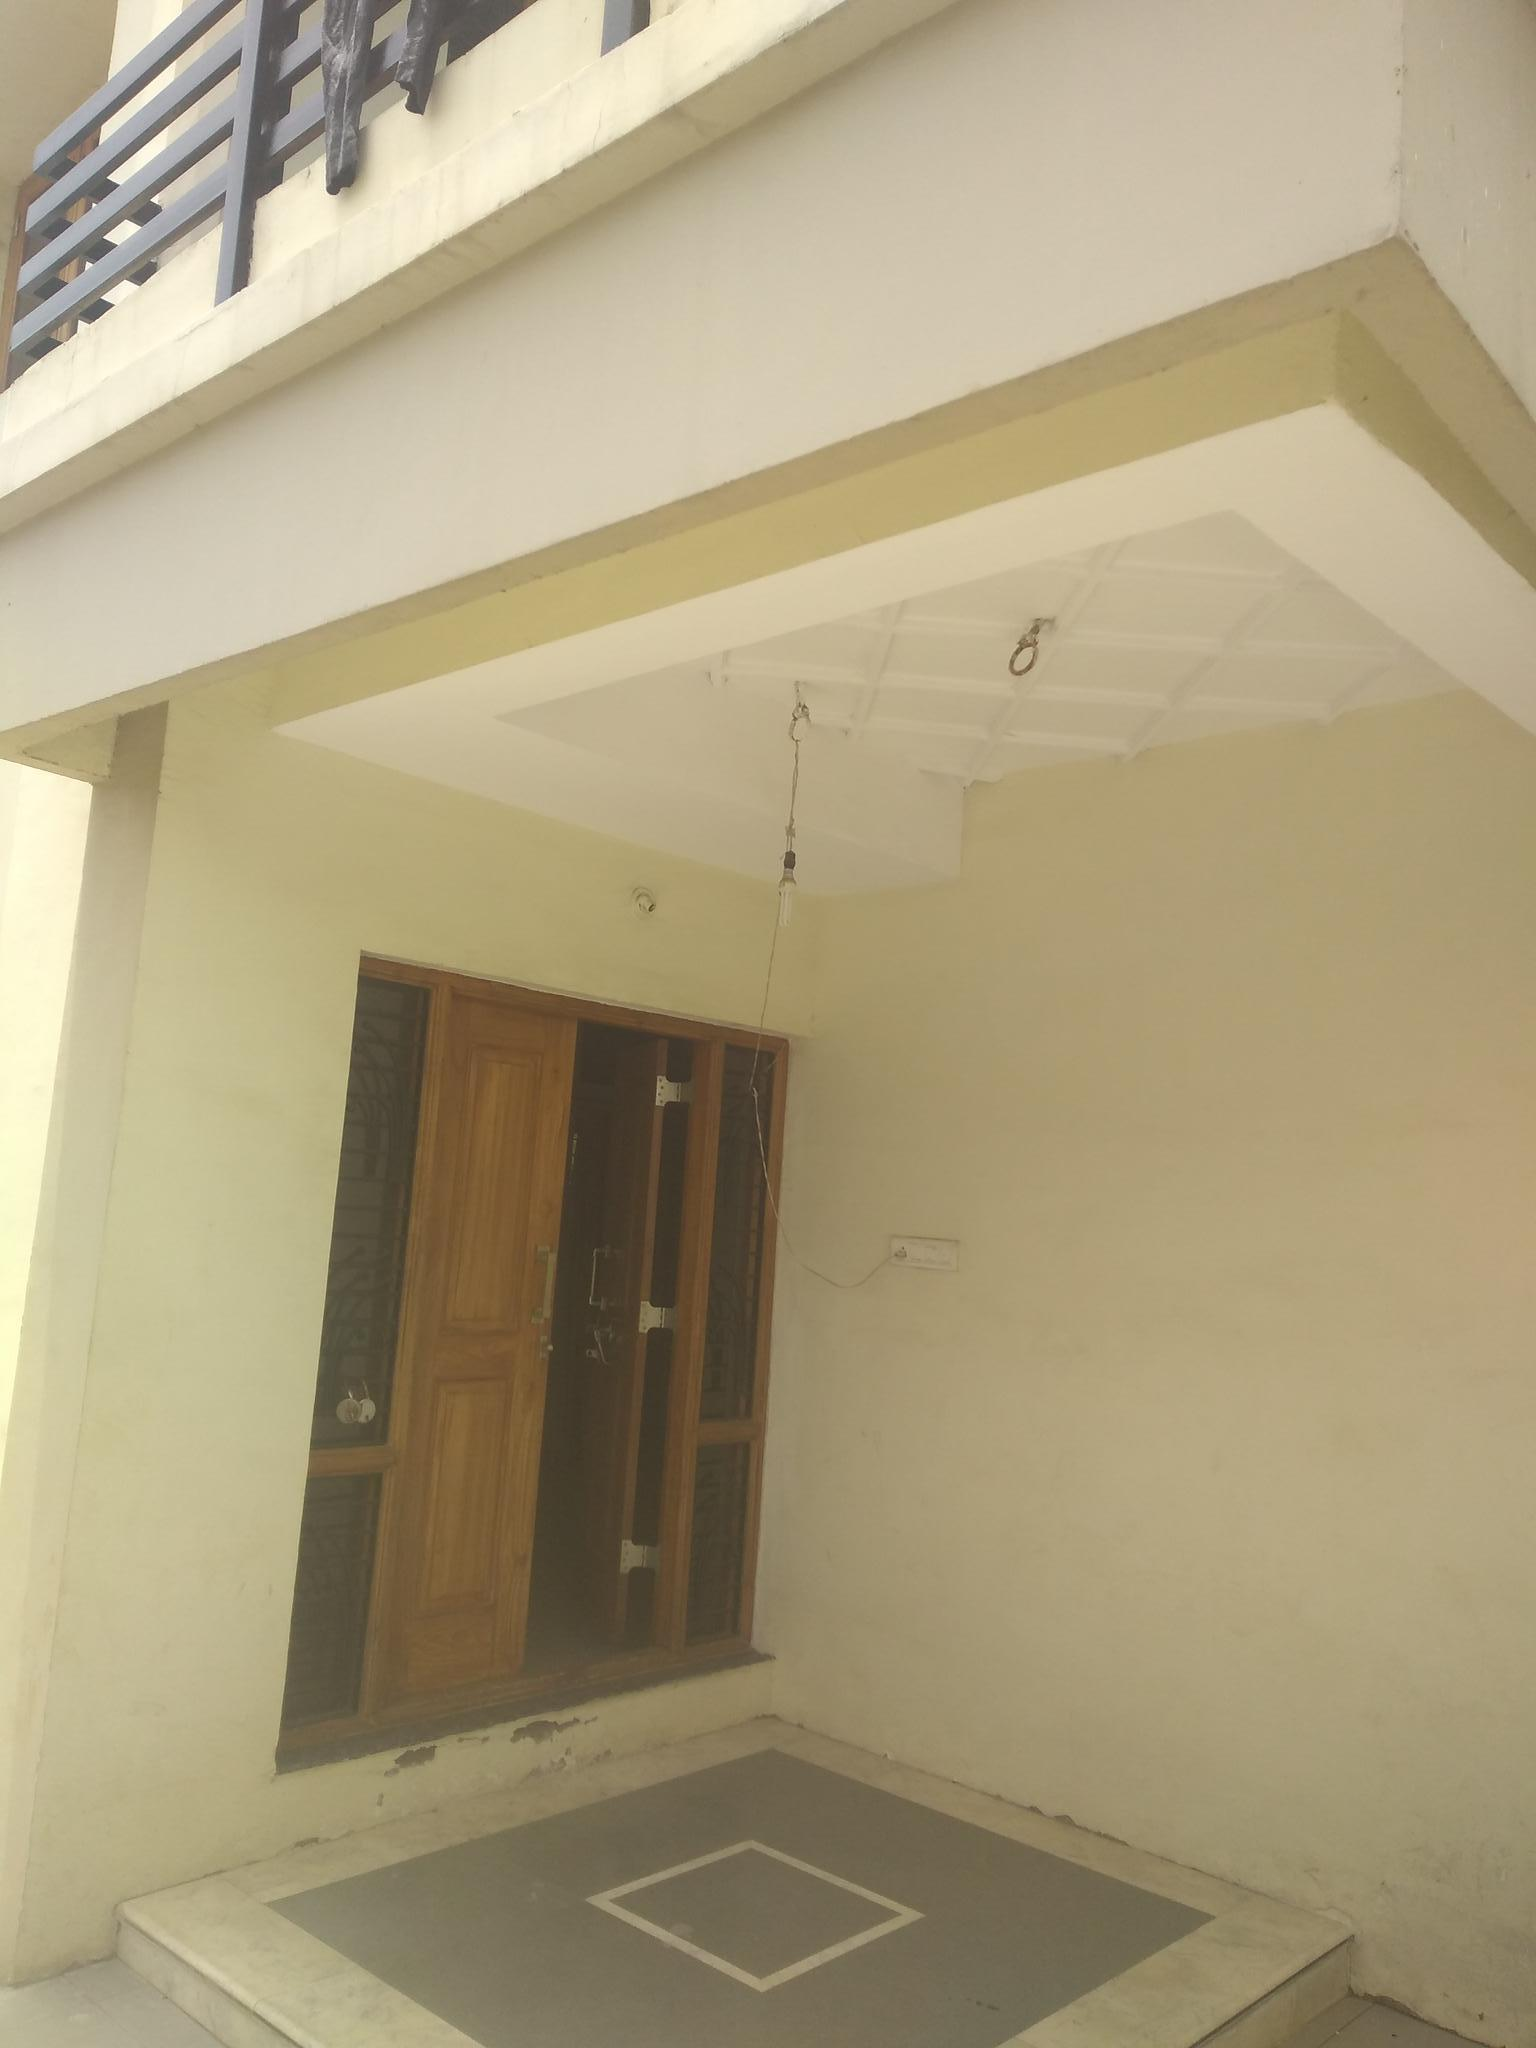 On ground floor 2bhk posh flat available for rent 15000 in pratap nagar,